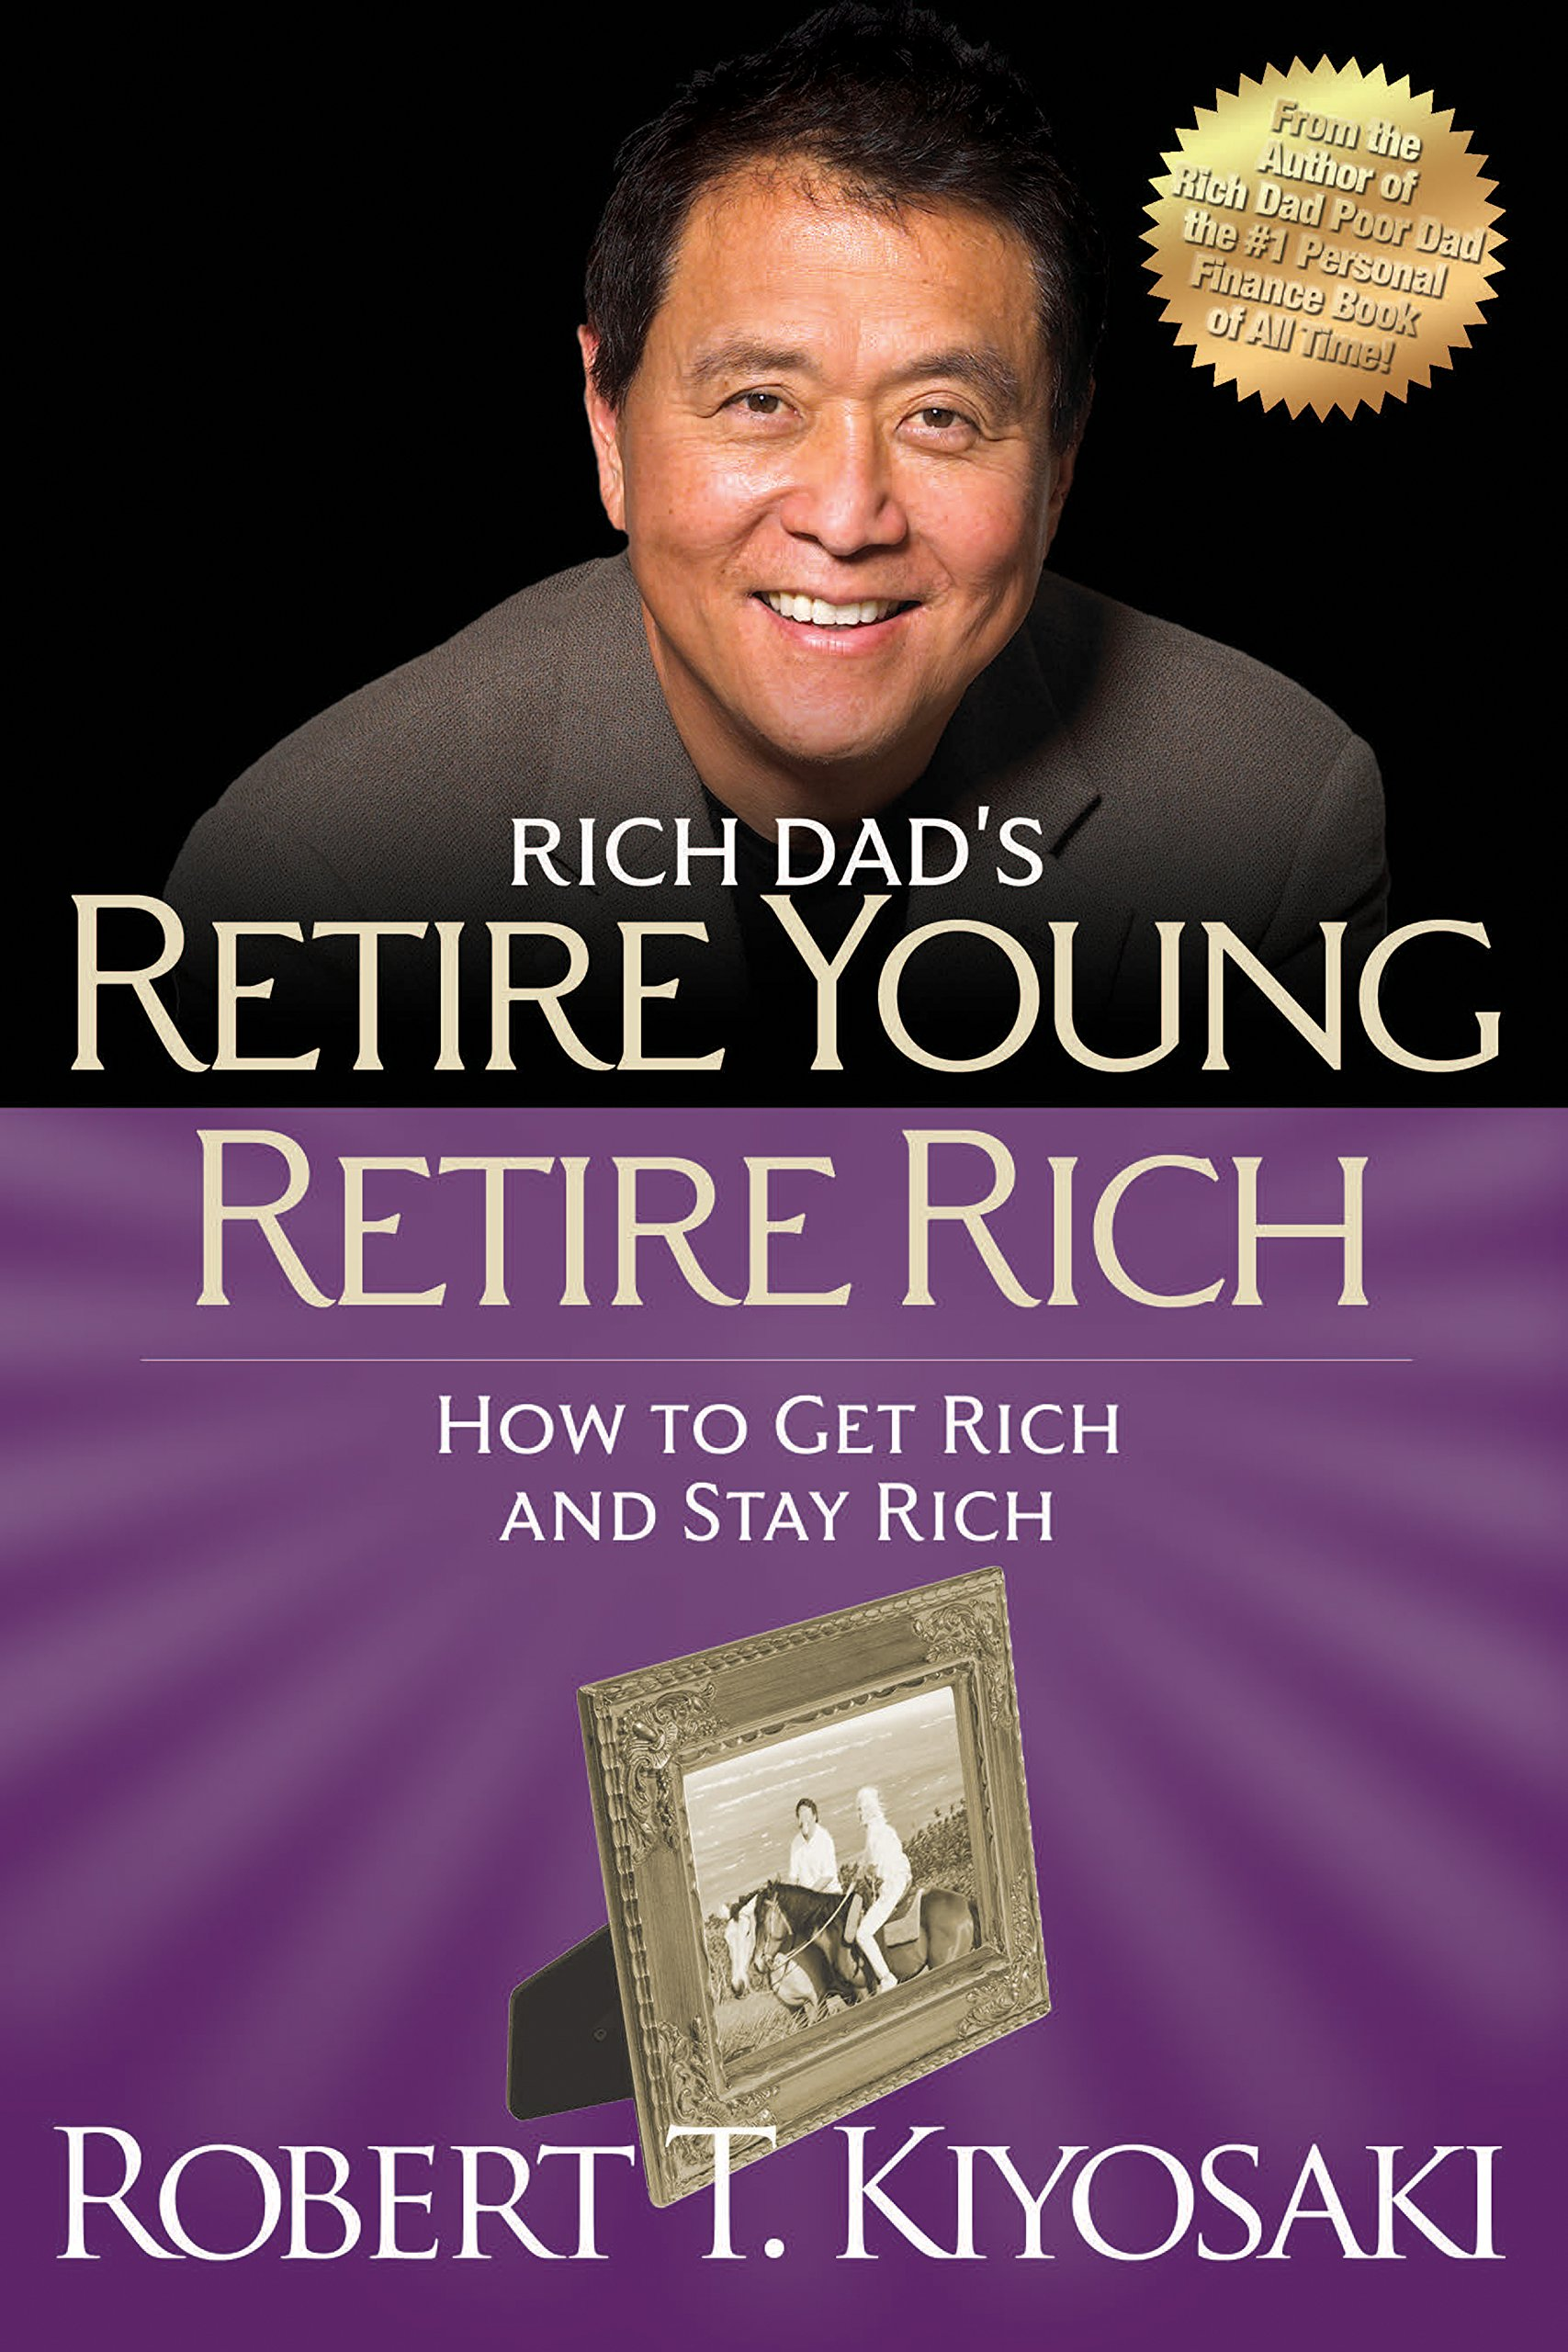 Retire Young Retire Rich  How To Get Rich Quickly And Stay Rich Forever   Rich Dad's  Paperback    English Edition